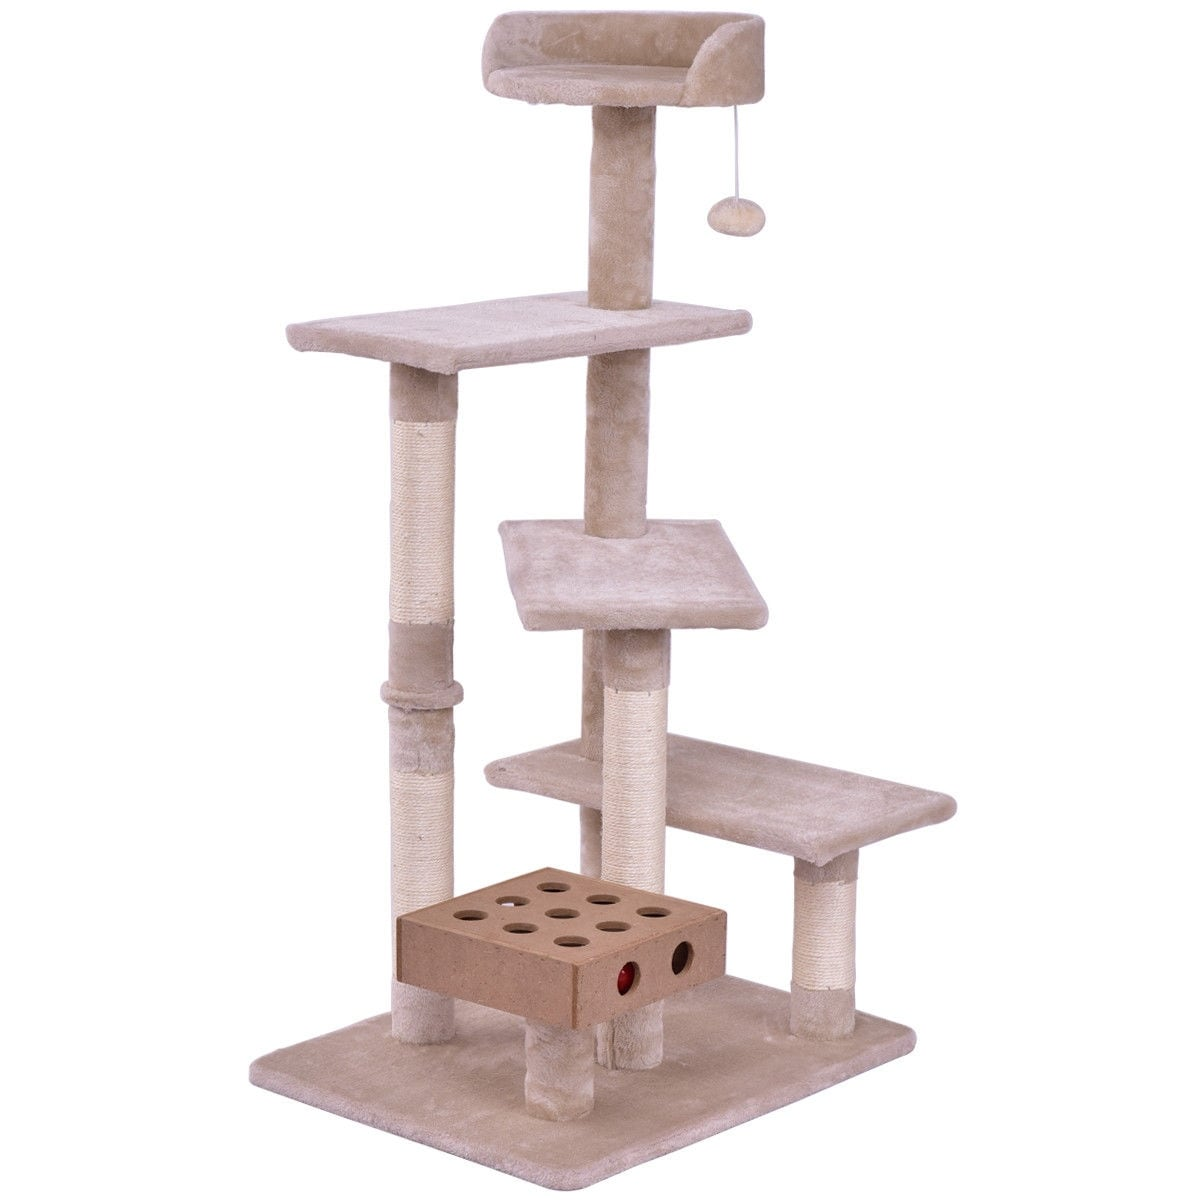 Gymax Pet Cat Tree Play House Tower Condo Bed Scratch Post Kitten Pet House  Tower   Free Shipping Today   Overstock   26105512